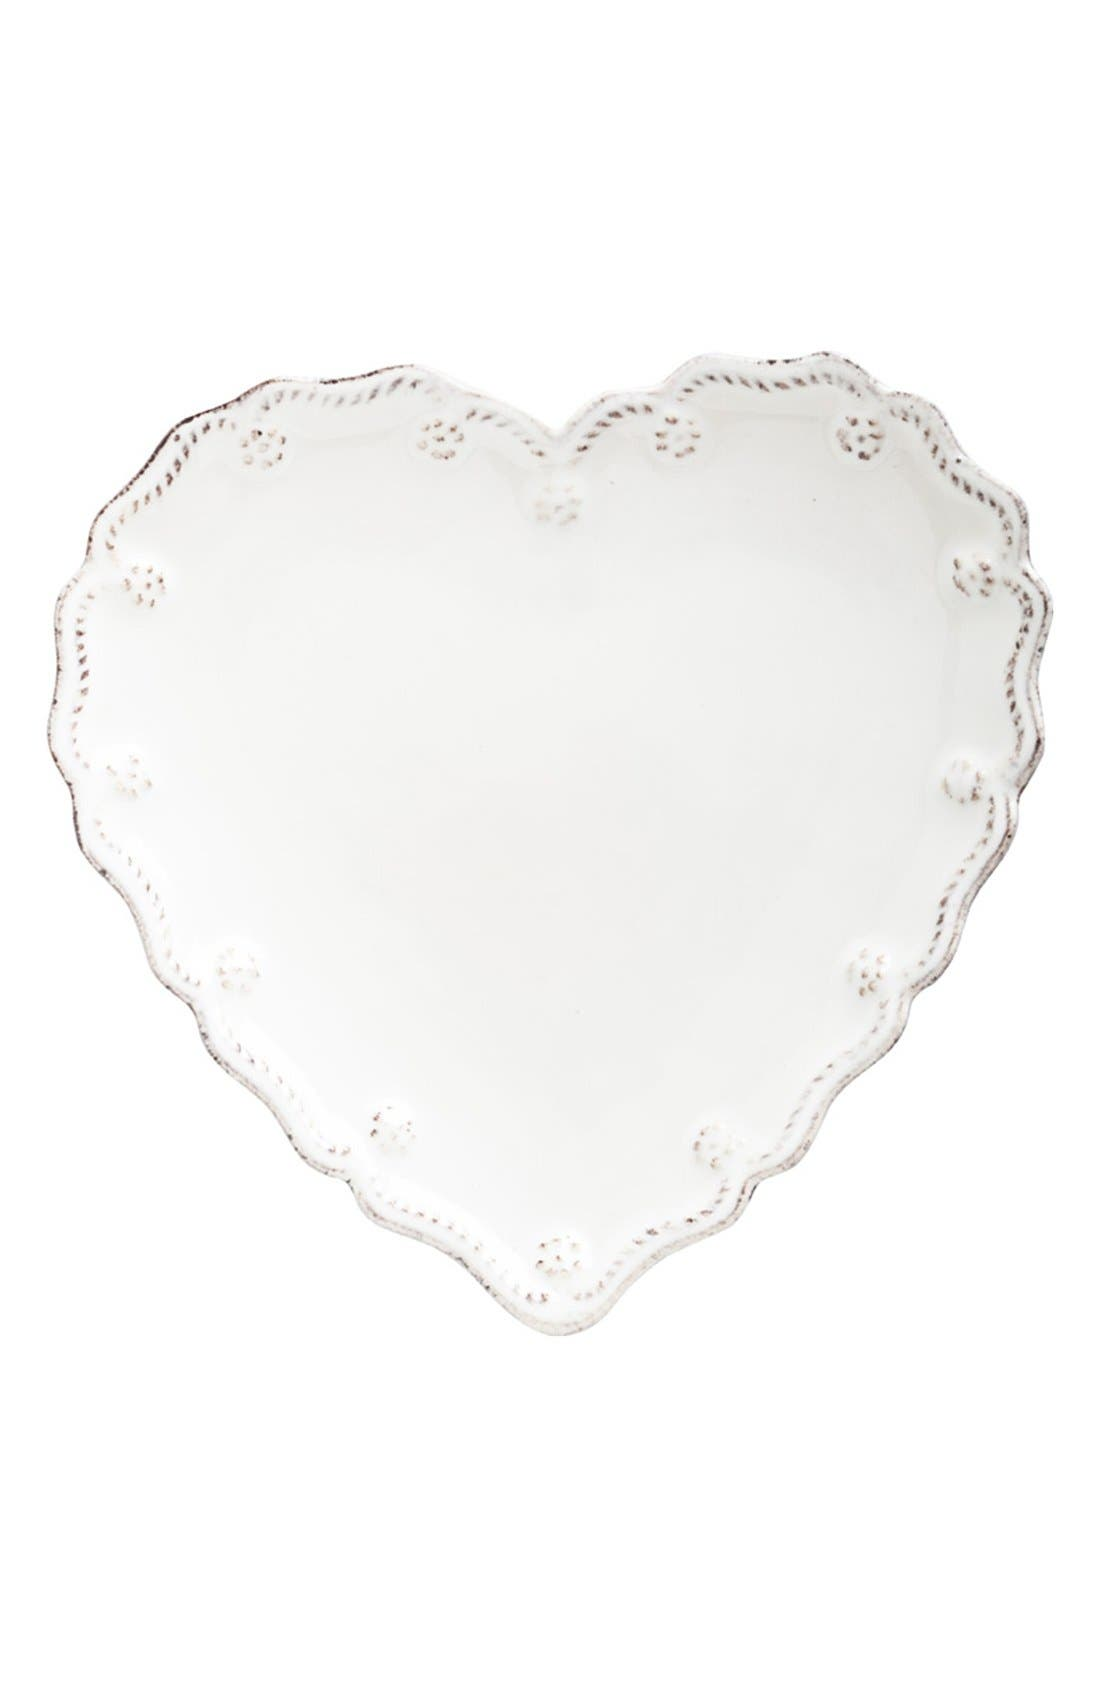 'Berry and Thread' Heart Shaped Cocktail Plates,                             Main thumbnail 1, color,                             Whitewash